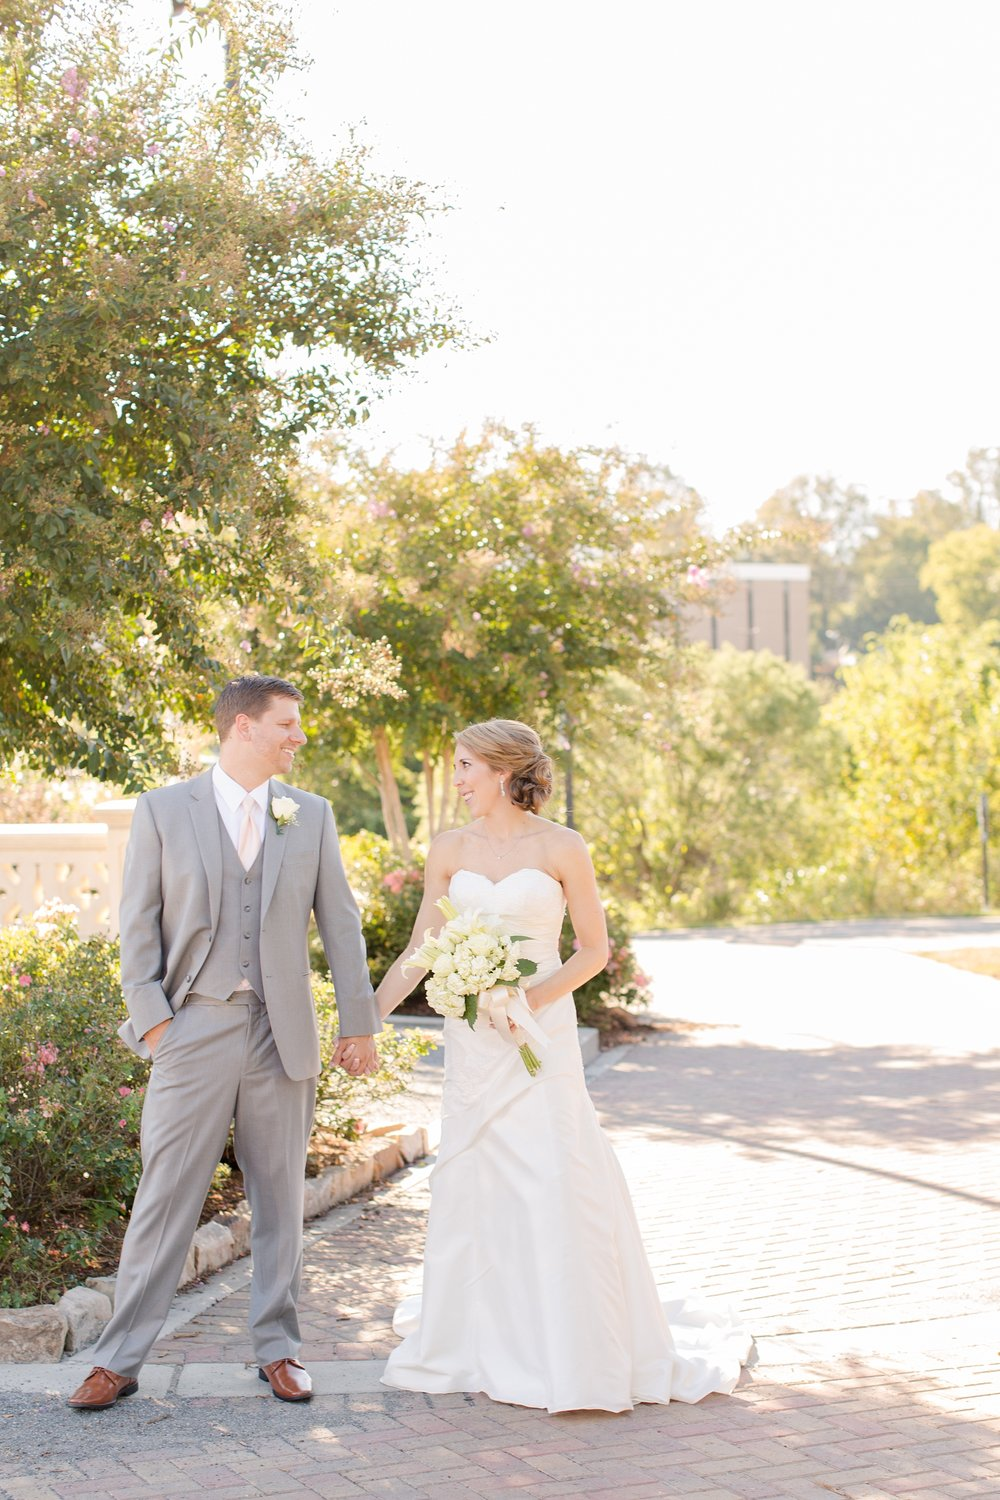 Diers 3-Bride & Groom Portraits-761_anna grace photography charlotte north carolina wedding photographer photo-1.jpg